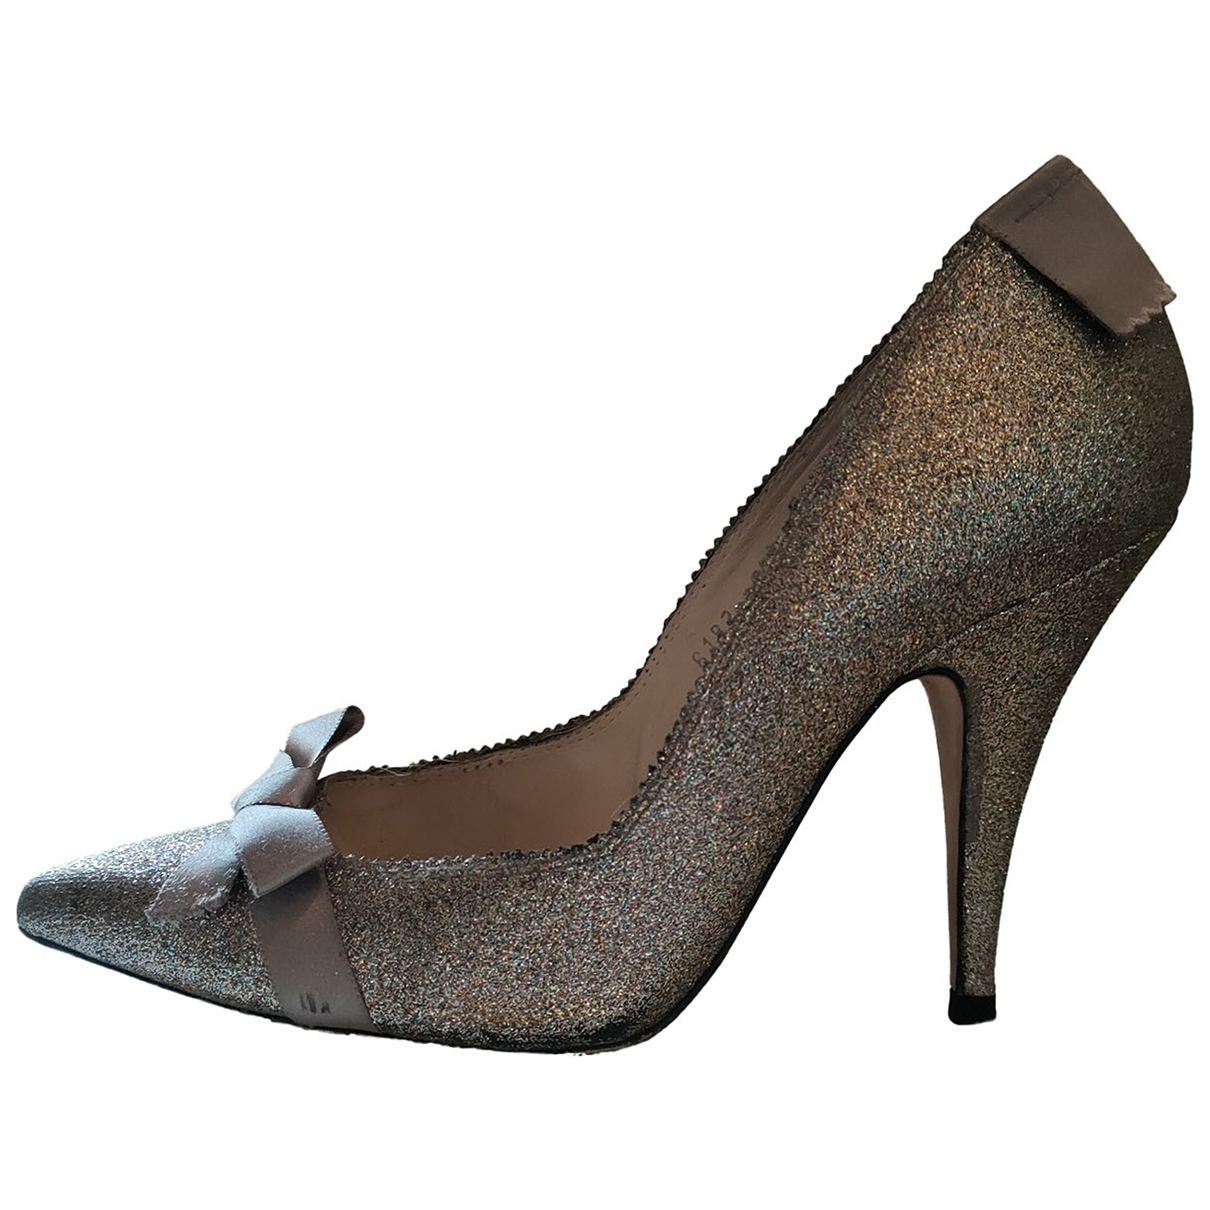 Pedro Garcia \N Metallic Glitter Heels for Women 38.5 EU